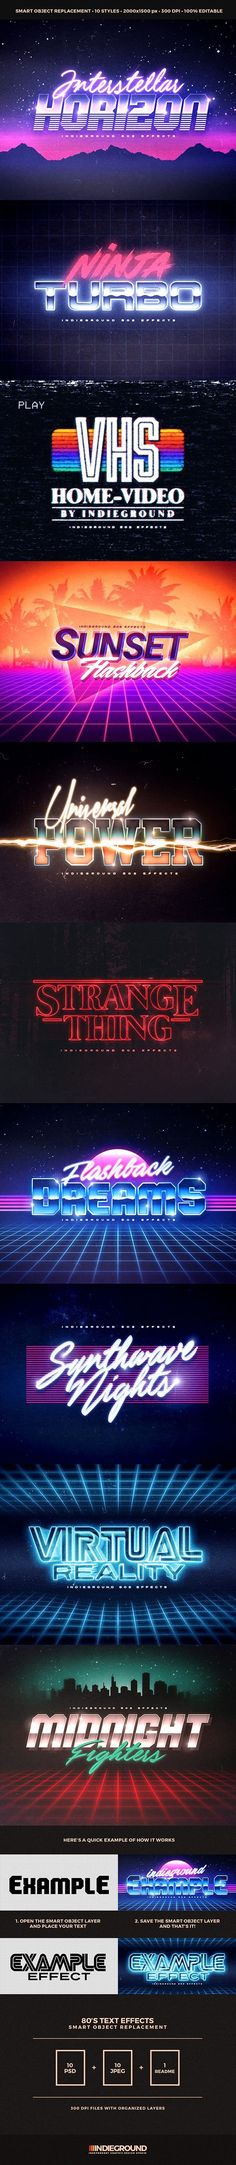 80's Retro Text Effects for Photoshop - graphic resource gives you a quick & easy possibility to apply an high quality retro 80s classic style to your text, shapes and logo. You just need to replace them into the smart object. Create a flyer, a facebook cover, a banner and give them the rad 1980s touch. Bring back the new retro wave feeling that only vhs, videogames, metal & chrome, synth, sun & palms could give!